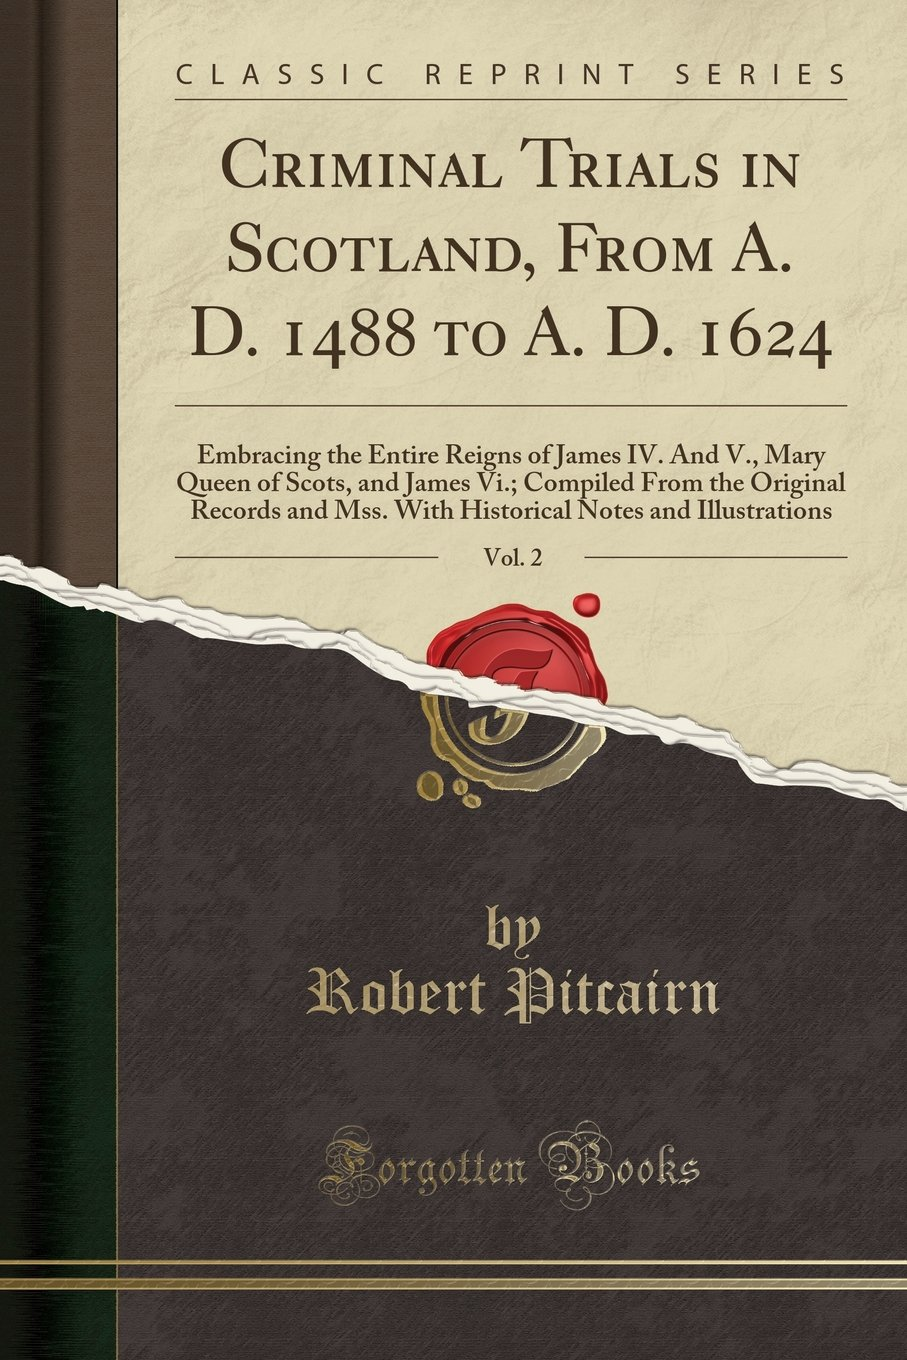 Download Criminal Trials in Scotland, From A. D. 1488 to A. D. 1624, Vol. 2: Embracing the Entire Reigns of James IV. And V., Mary Queen of Scots, and James ... Notes and Illustrations (Classic Reprint) ebook